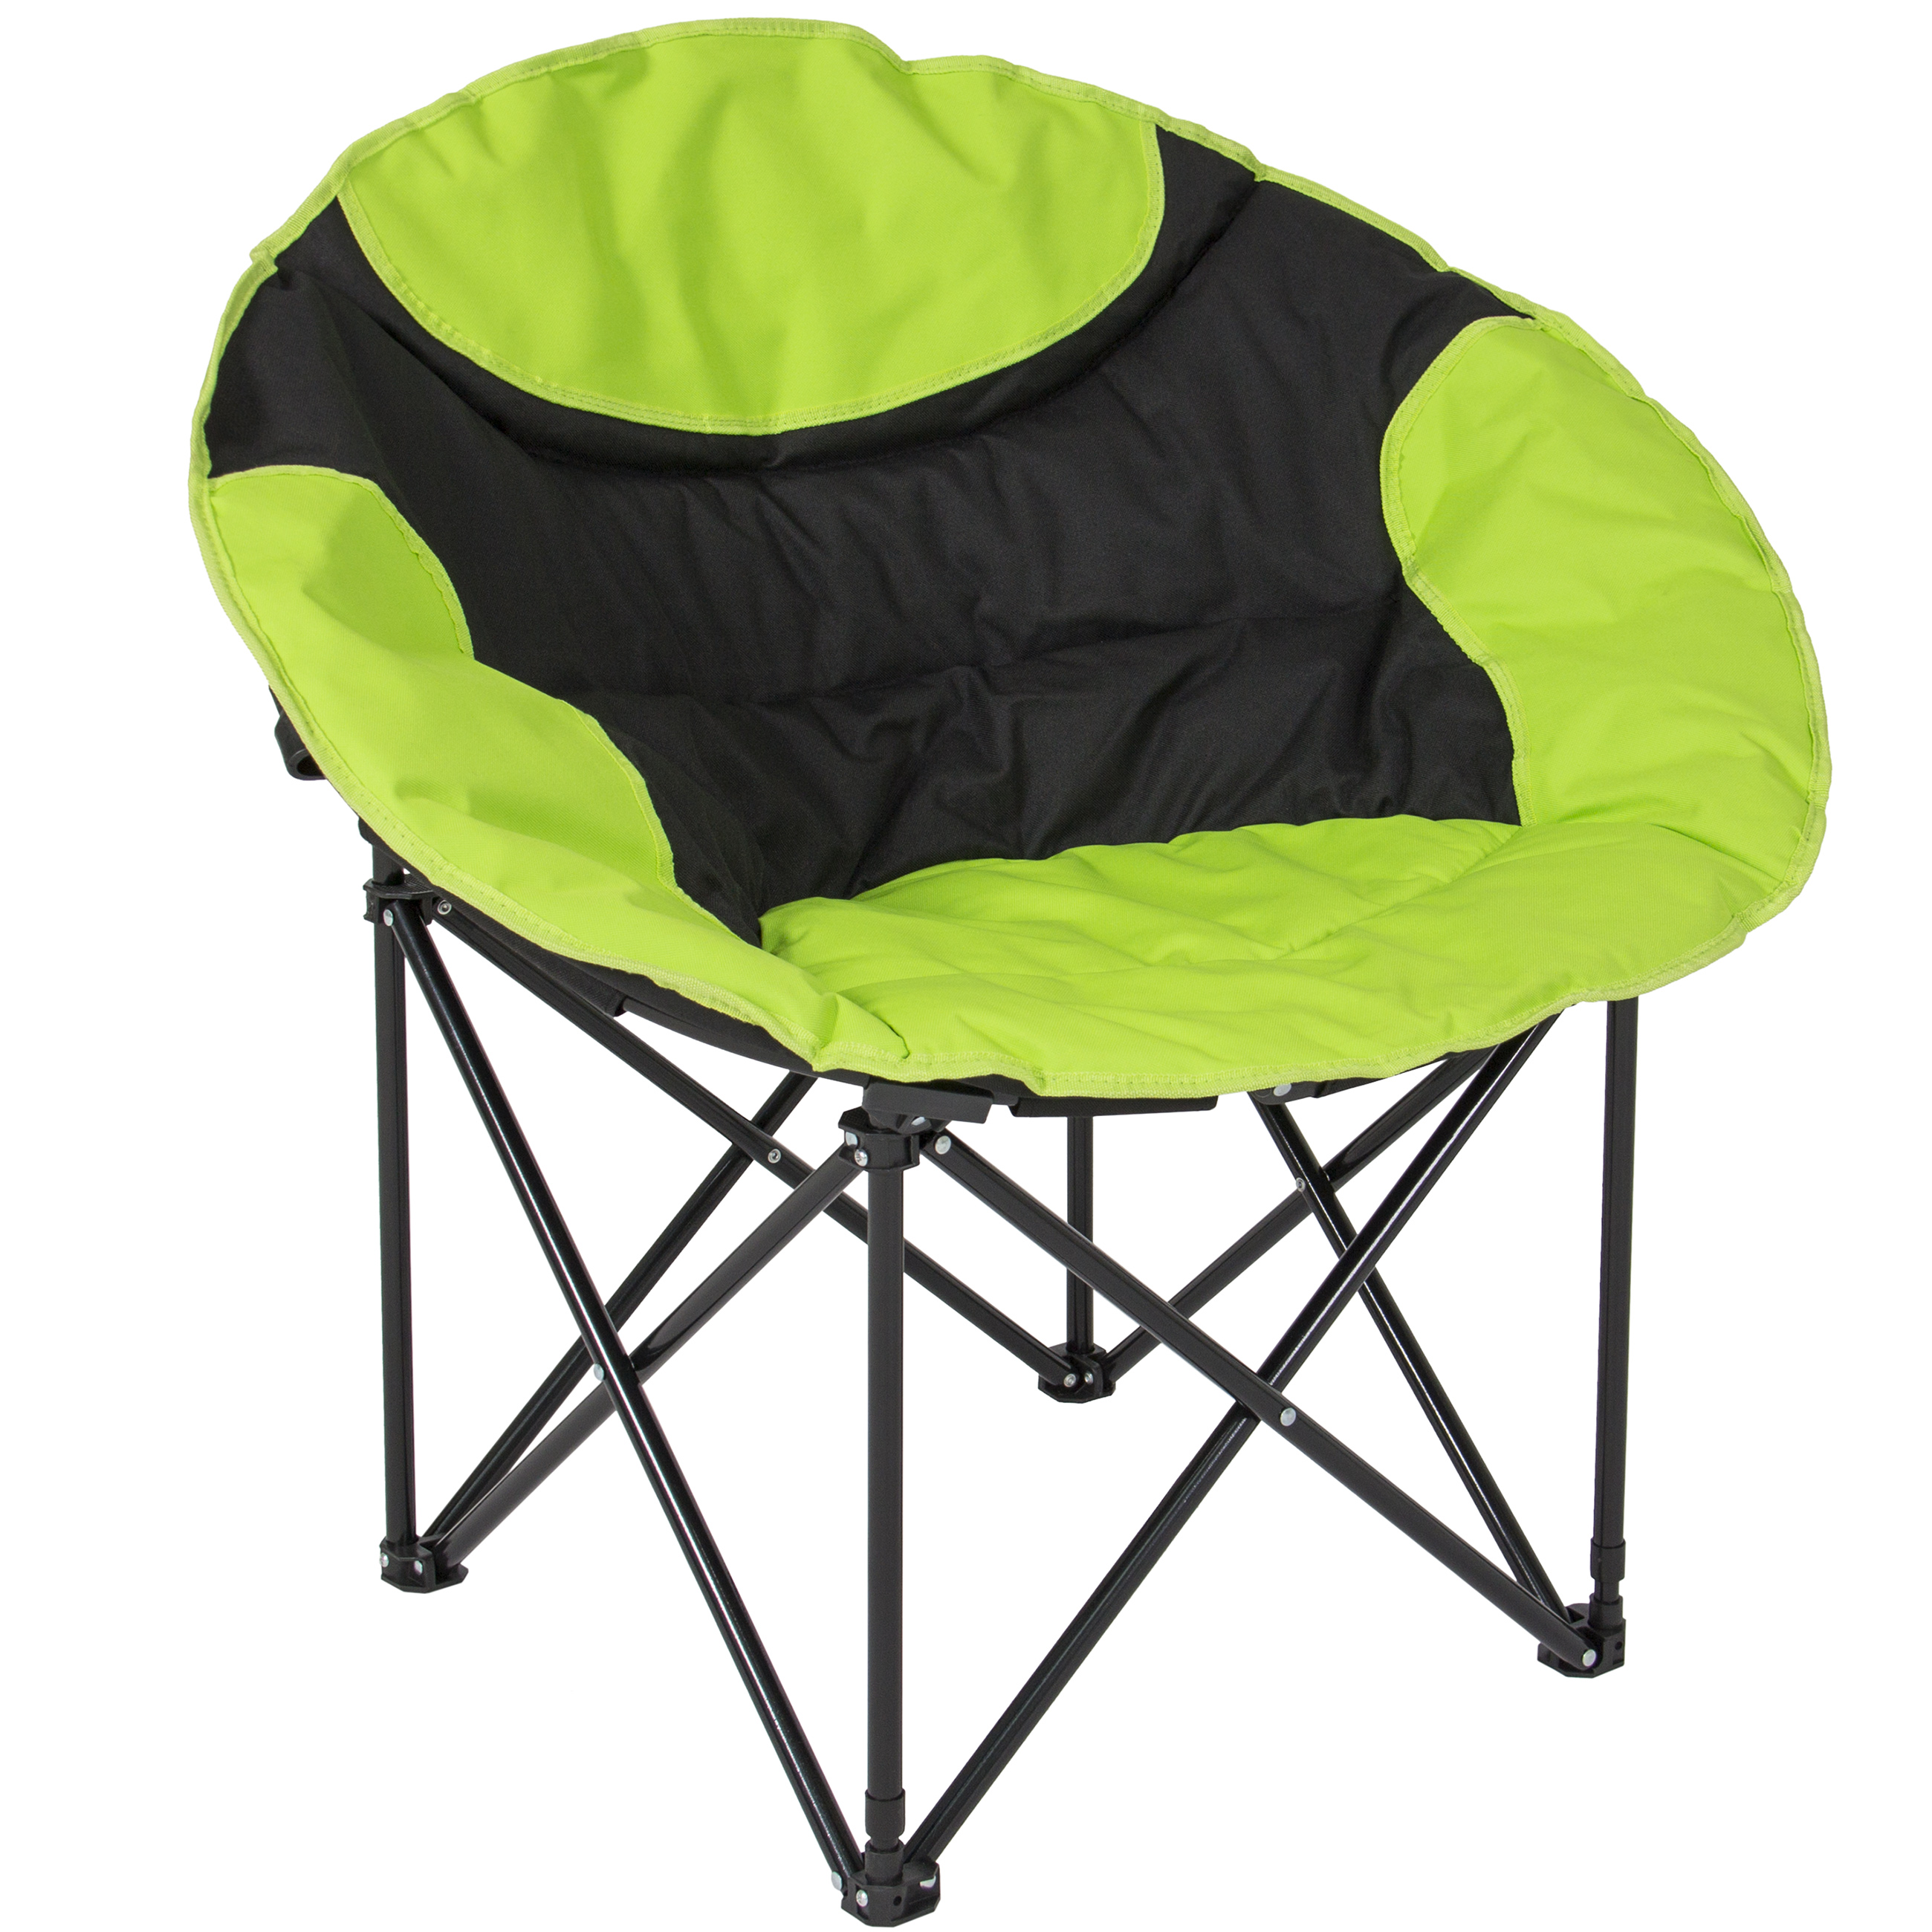 Best Choice Products Outdoor Foldable Lightweight Camping Sports Chair w/ Large Pocket, Carrying Bag- Green